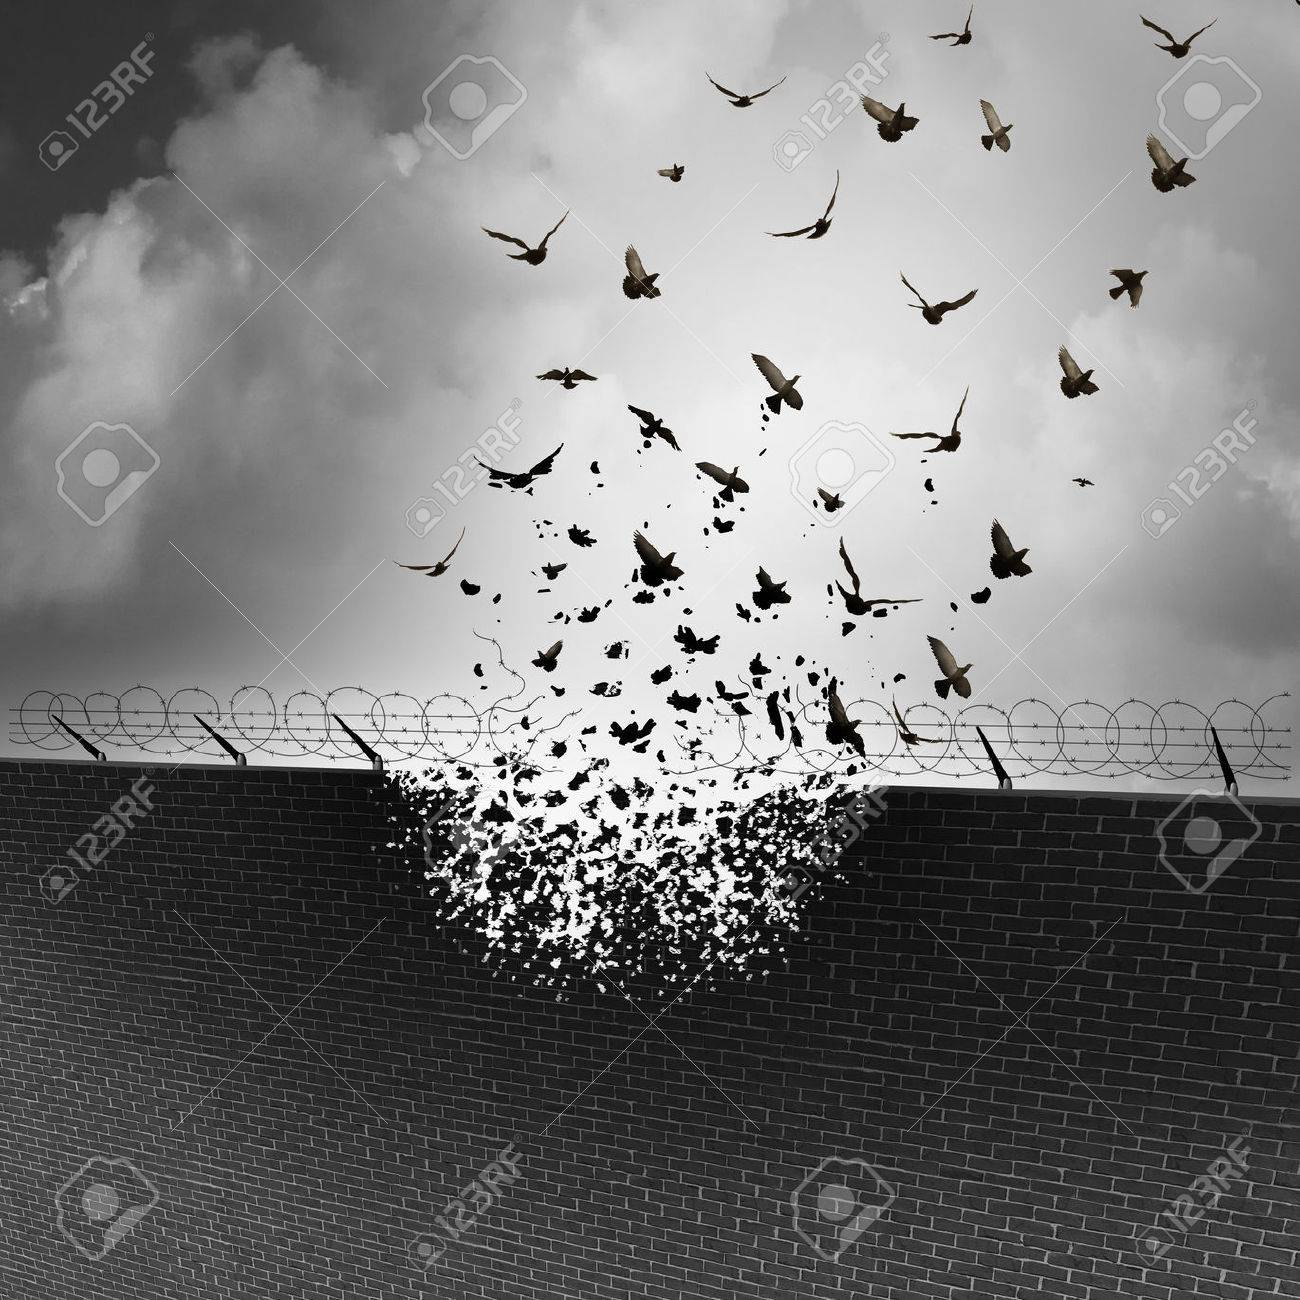 Break down walls and remove barriers and tarrifs as a business concept for open free trade with no levy or excise tax as a security wall being destroyed transforming into a group of flying birds. Stock Photo - 54085841